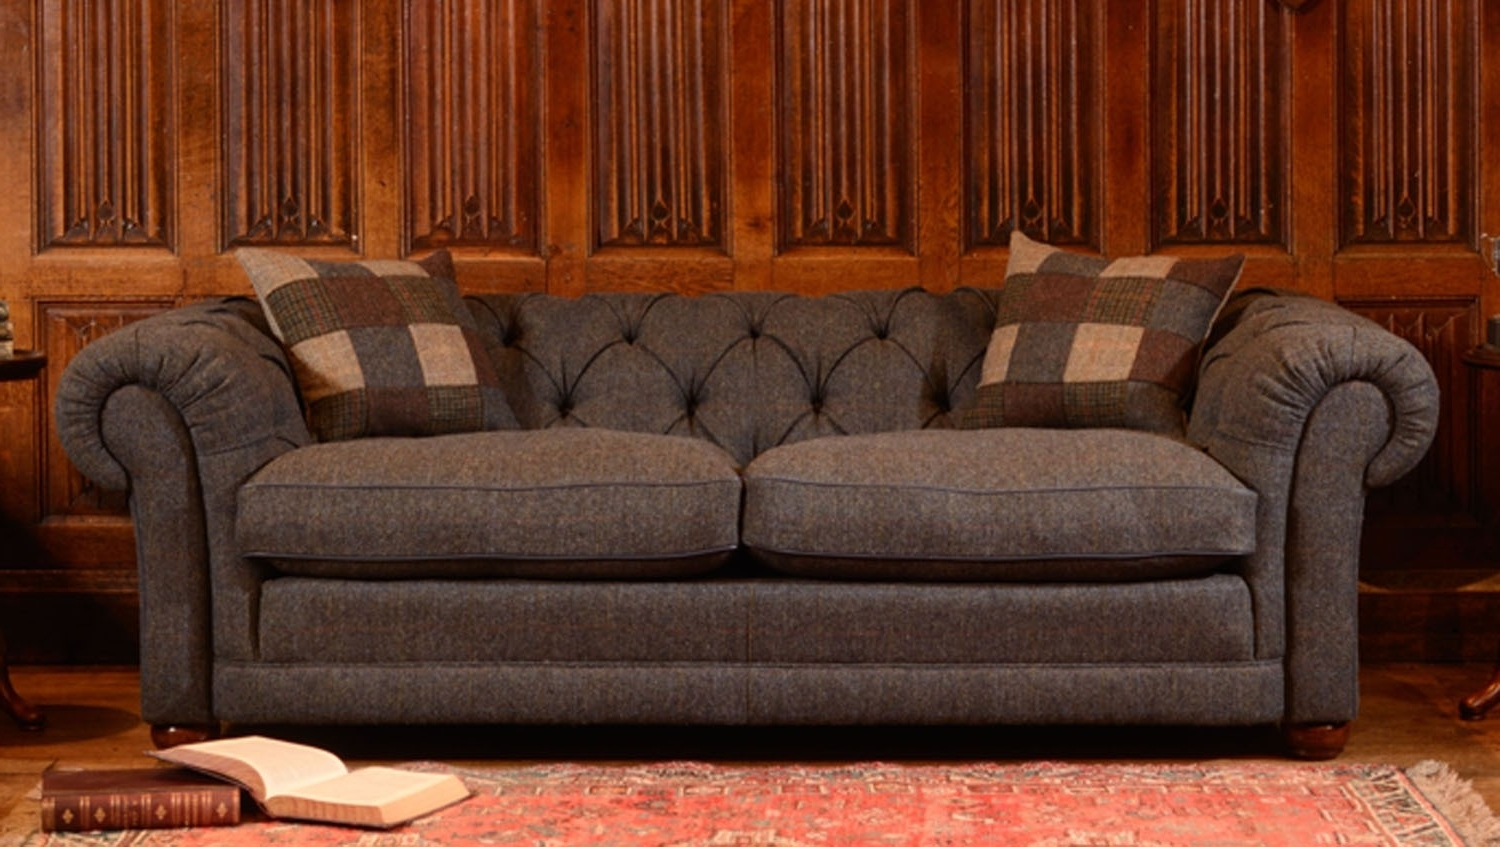 Tweed Fabric Sofas Within Most Up To Date Tetrad Harris Castlebay Petit Sofa (View 14 of 15)